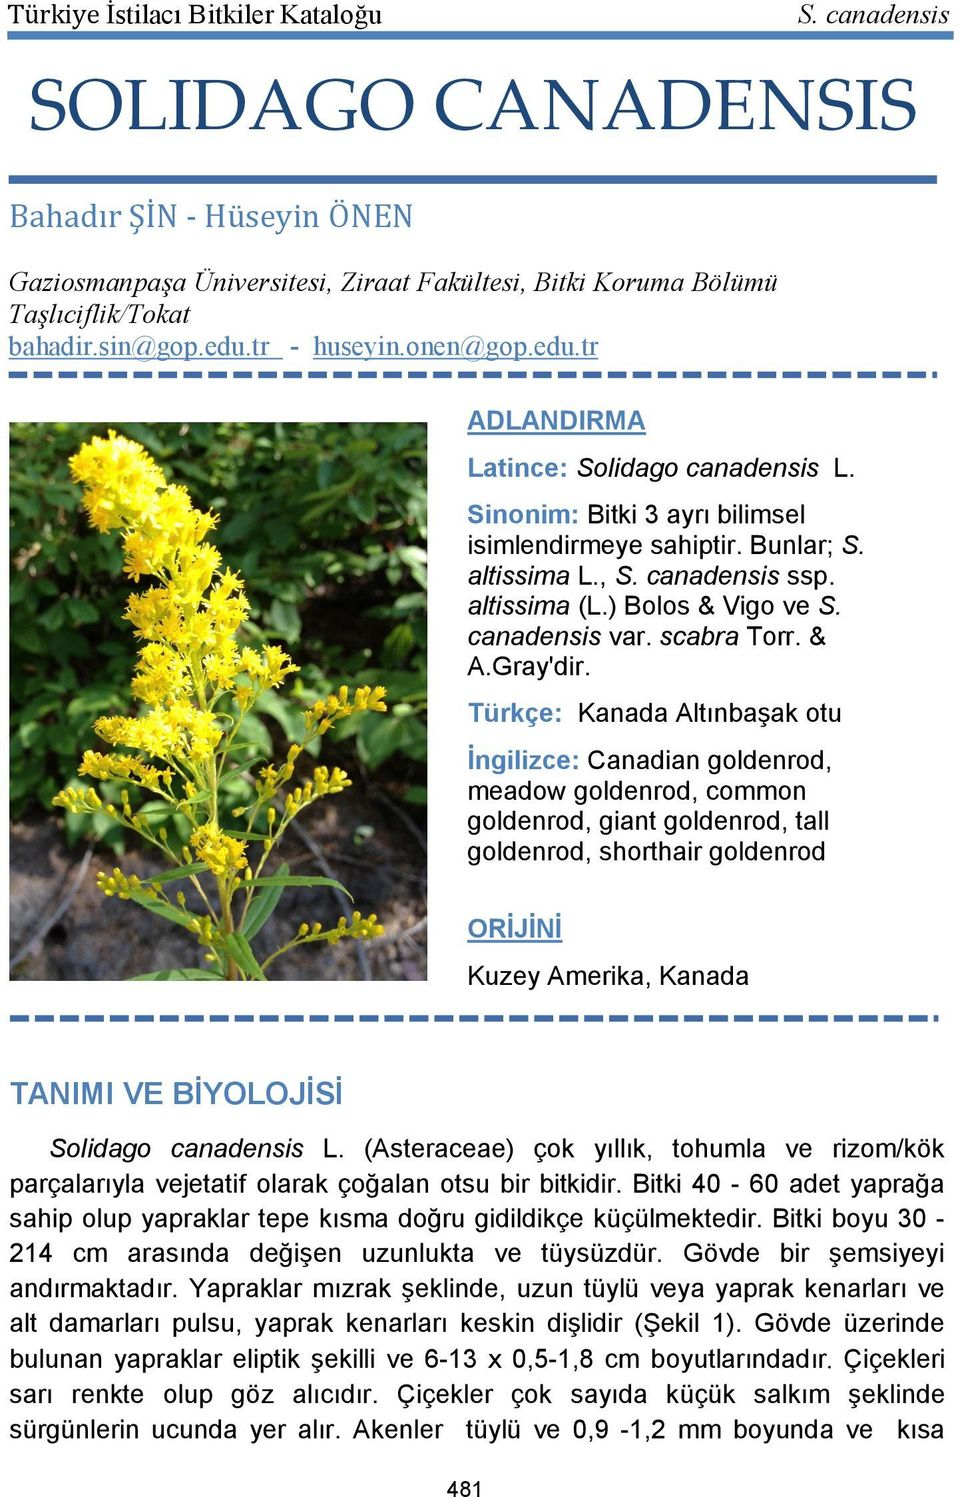 Türkçe: Kanada Altınbaşak otu İngilizce: Canadian goldenrod, meadow goldenrod, common goldenrod, giant goldenrod, tall goldenrod, shorthair goldenrod ORİJİNİ Kuzey Amerika, Kanada TANIMI VE